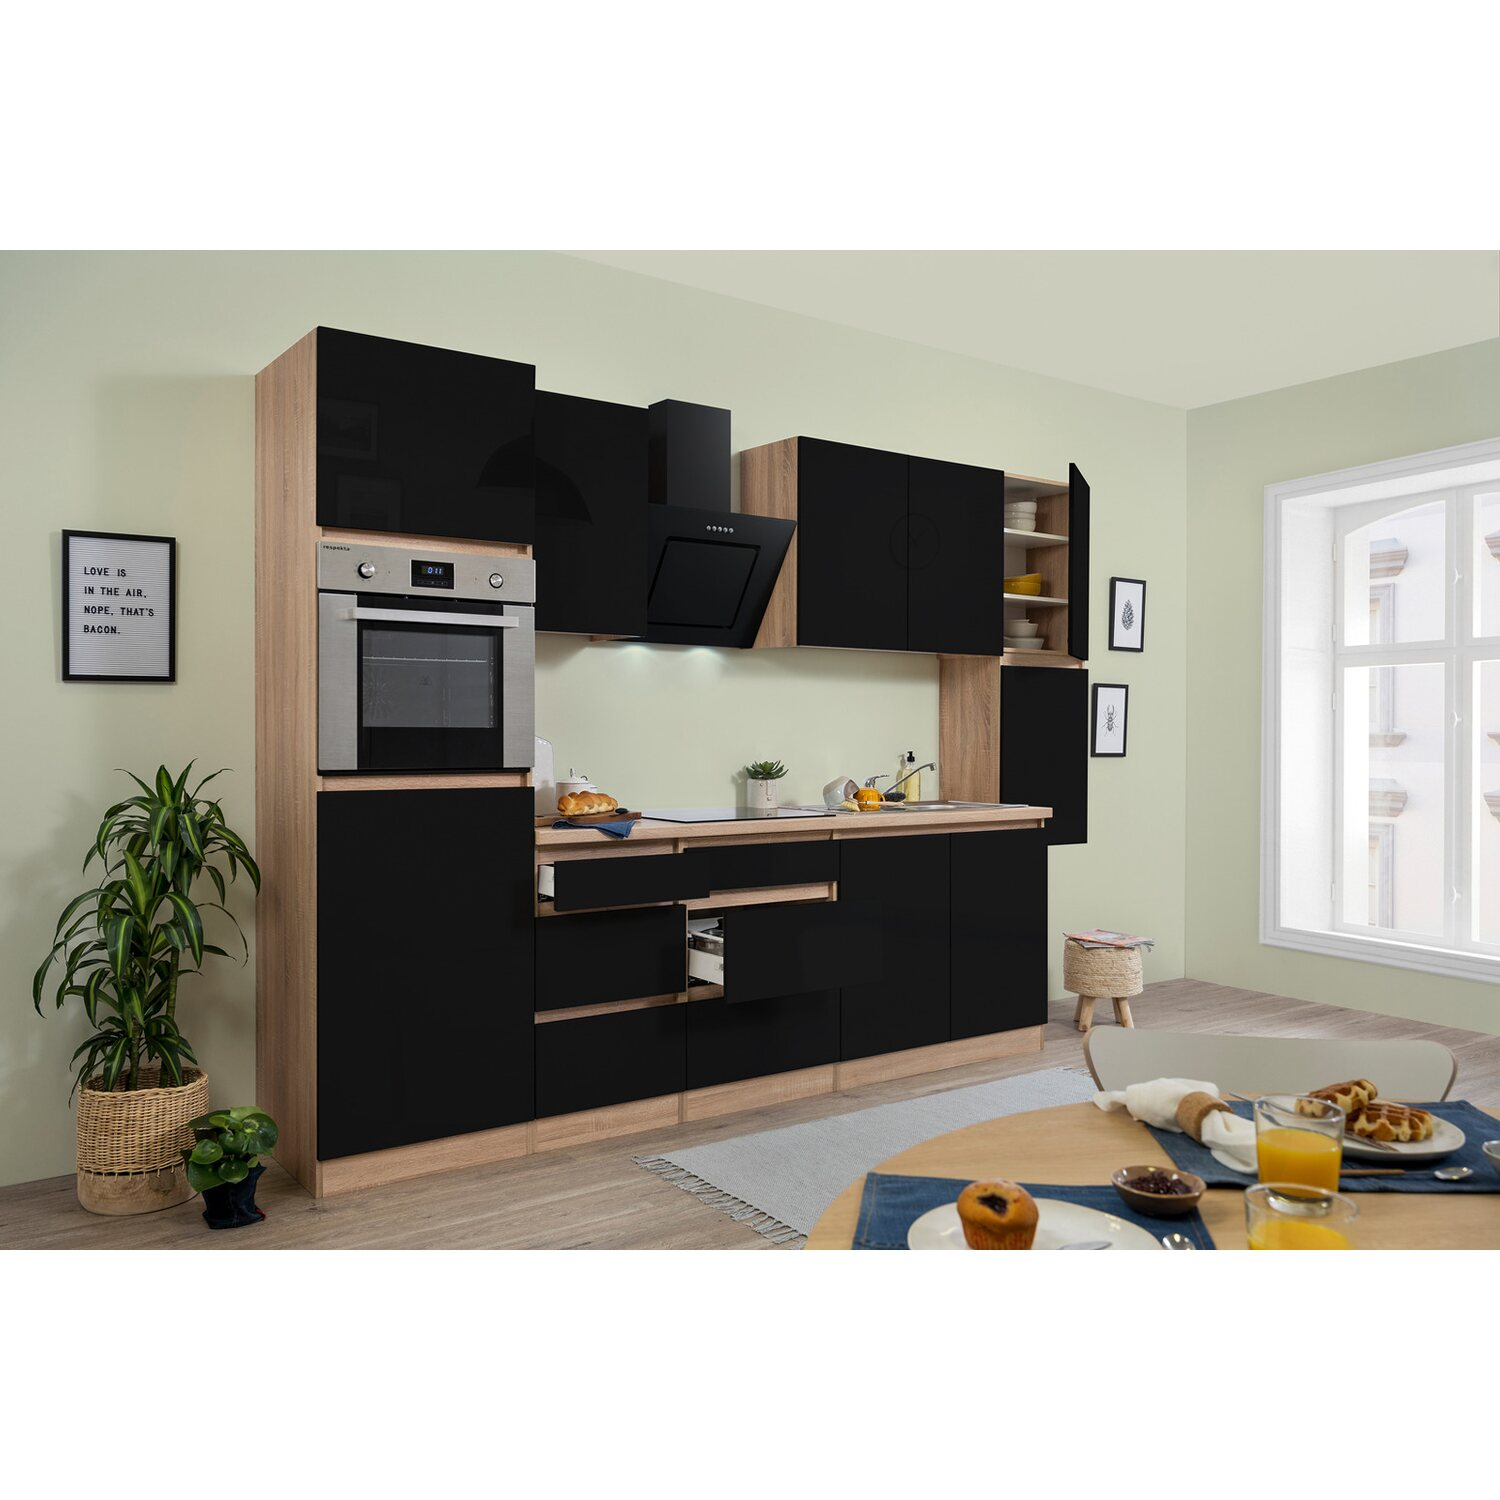 respekta k chenzeile glrp320hess grifflos 320 cm schwarz. Black Bedroom Furniture Sets. Home Design Ideas